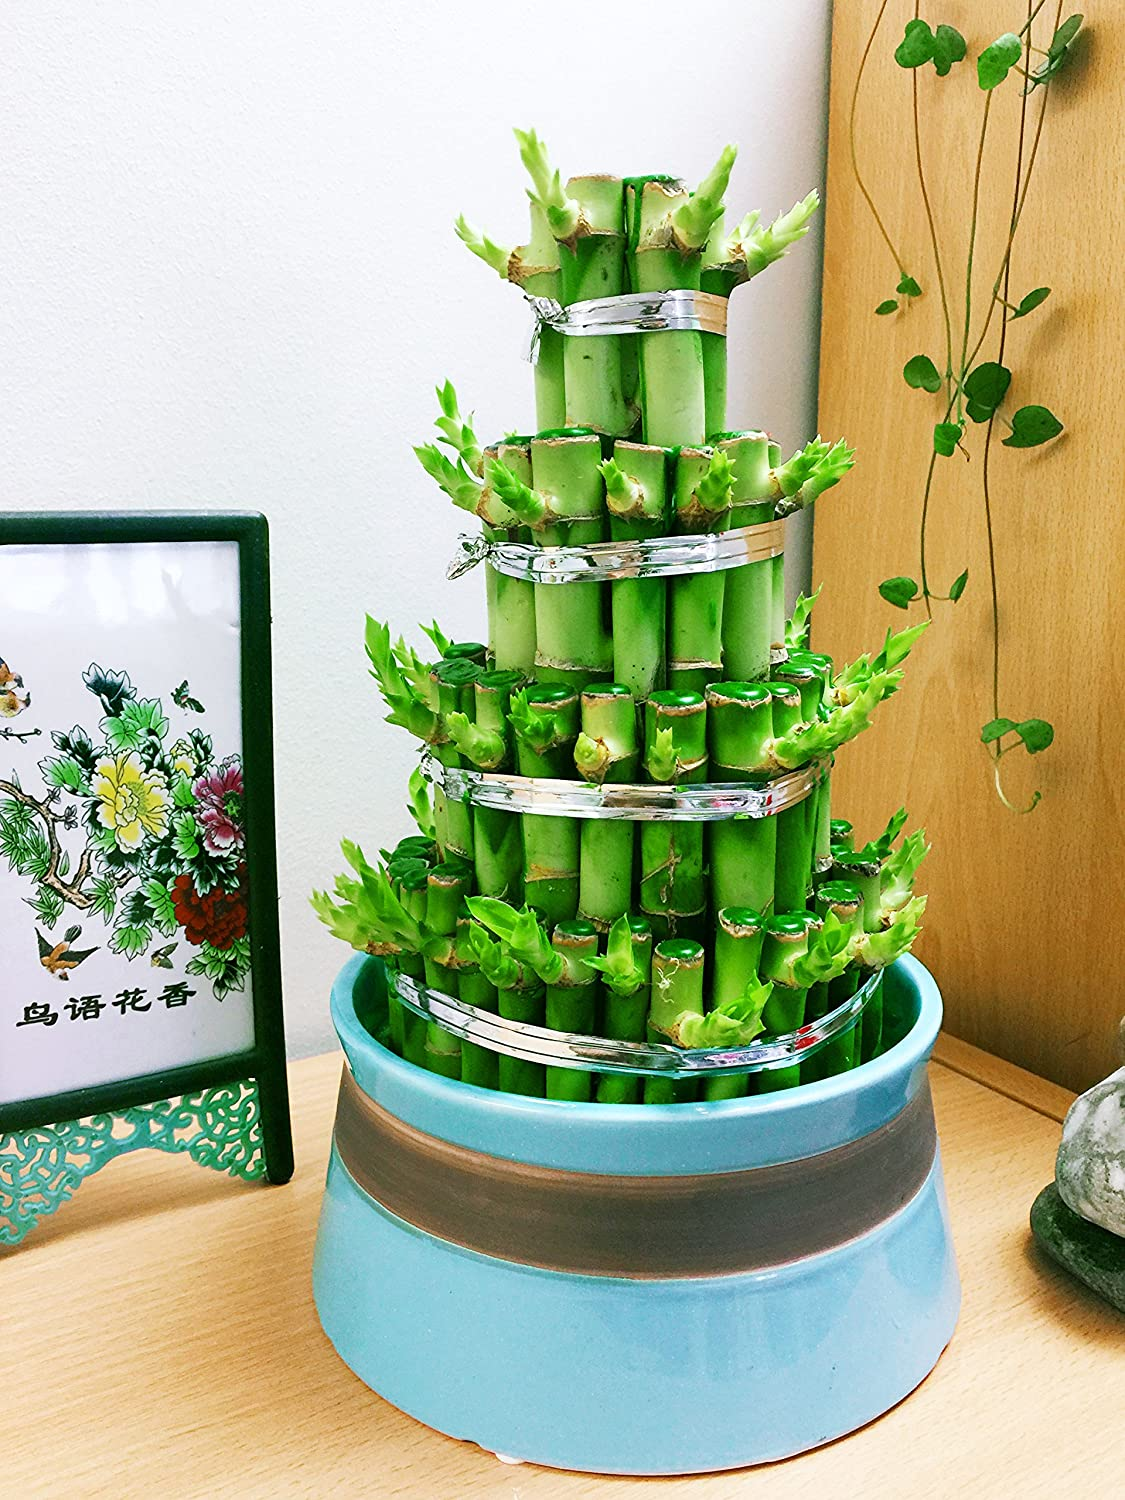 Easy Plants 1 LARGE TOWER LUCKY BAMBOO IN RANDOM COLOUR CERAMIC POT